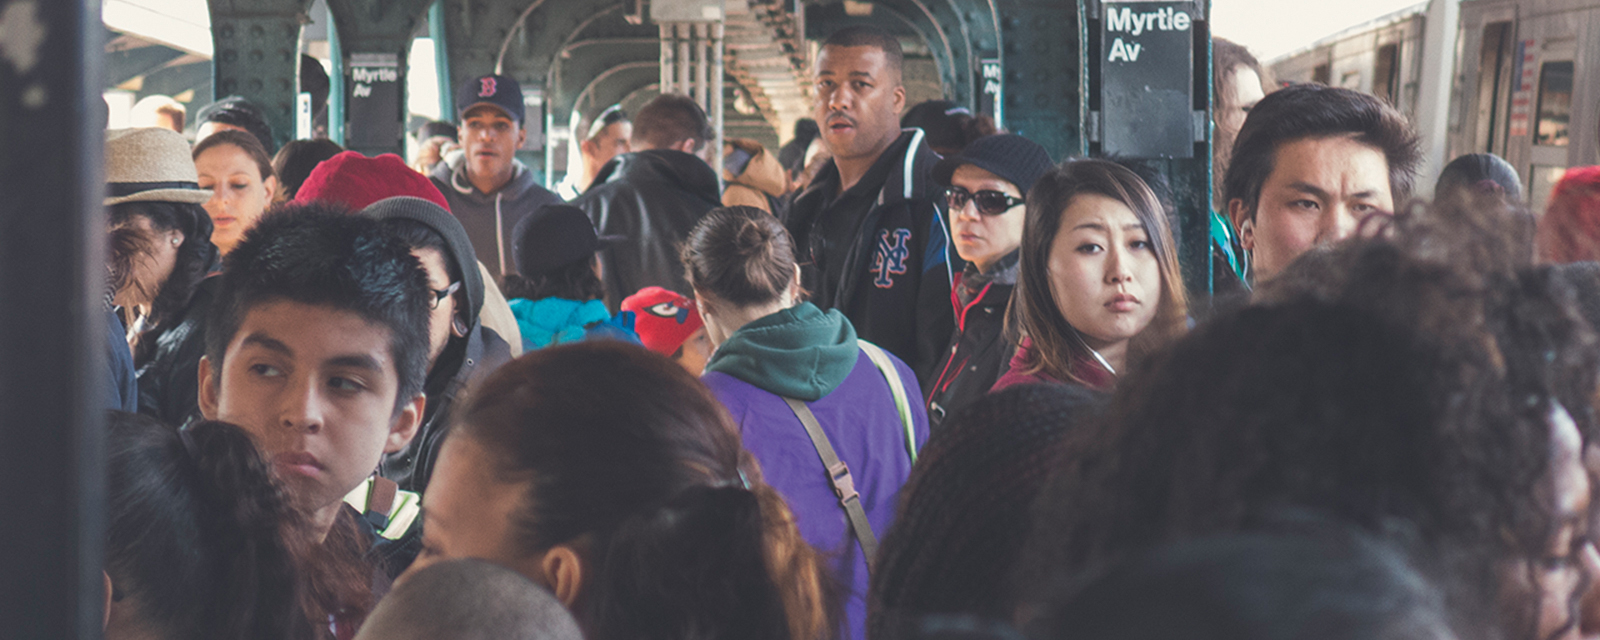 A crowd of people at a subway stop in New York